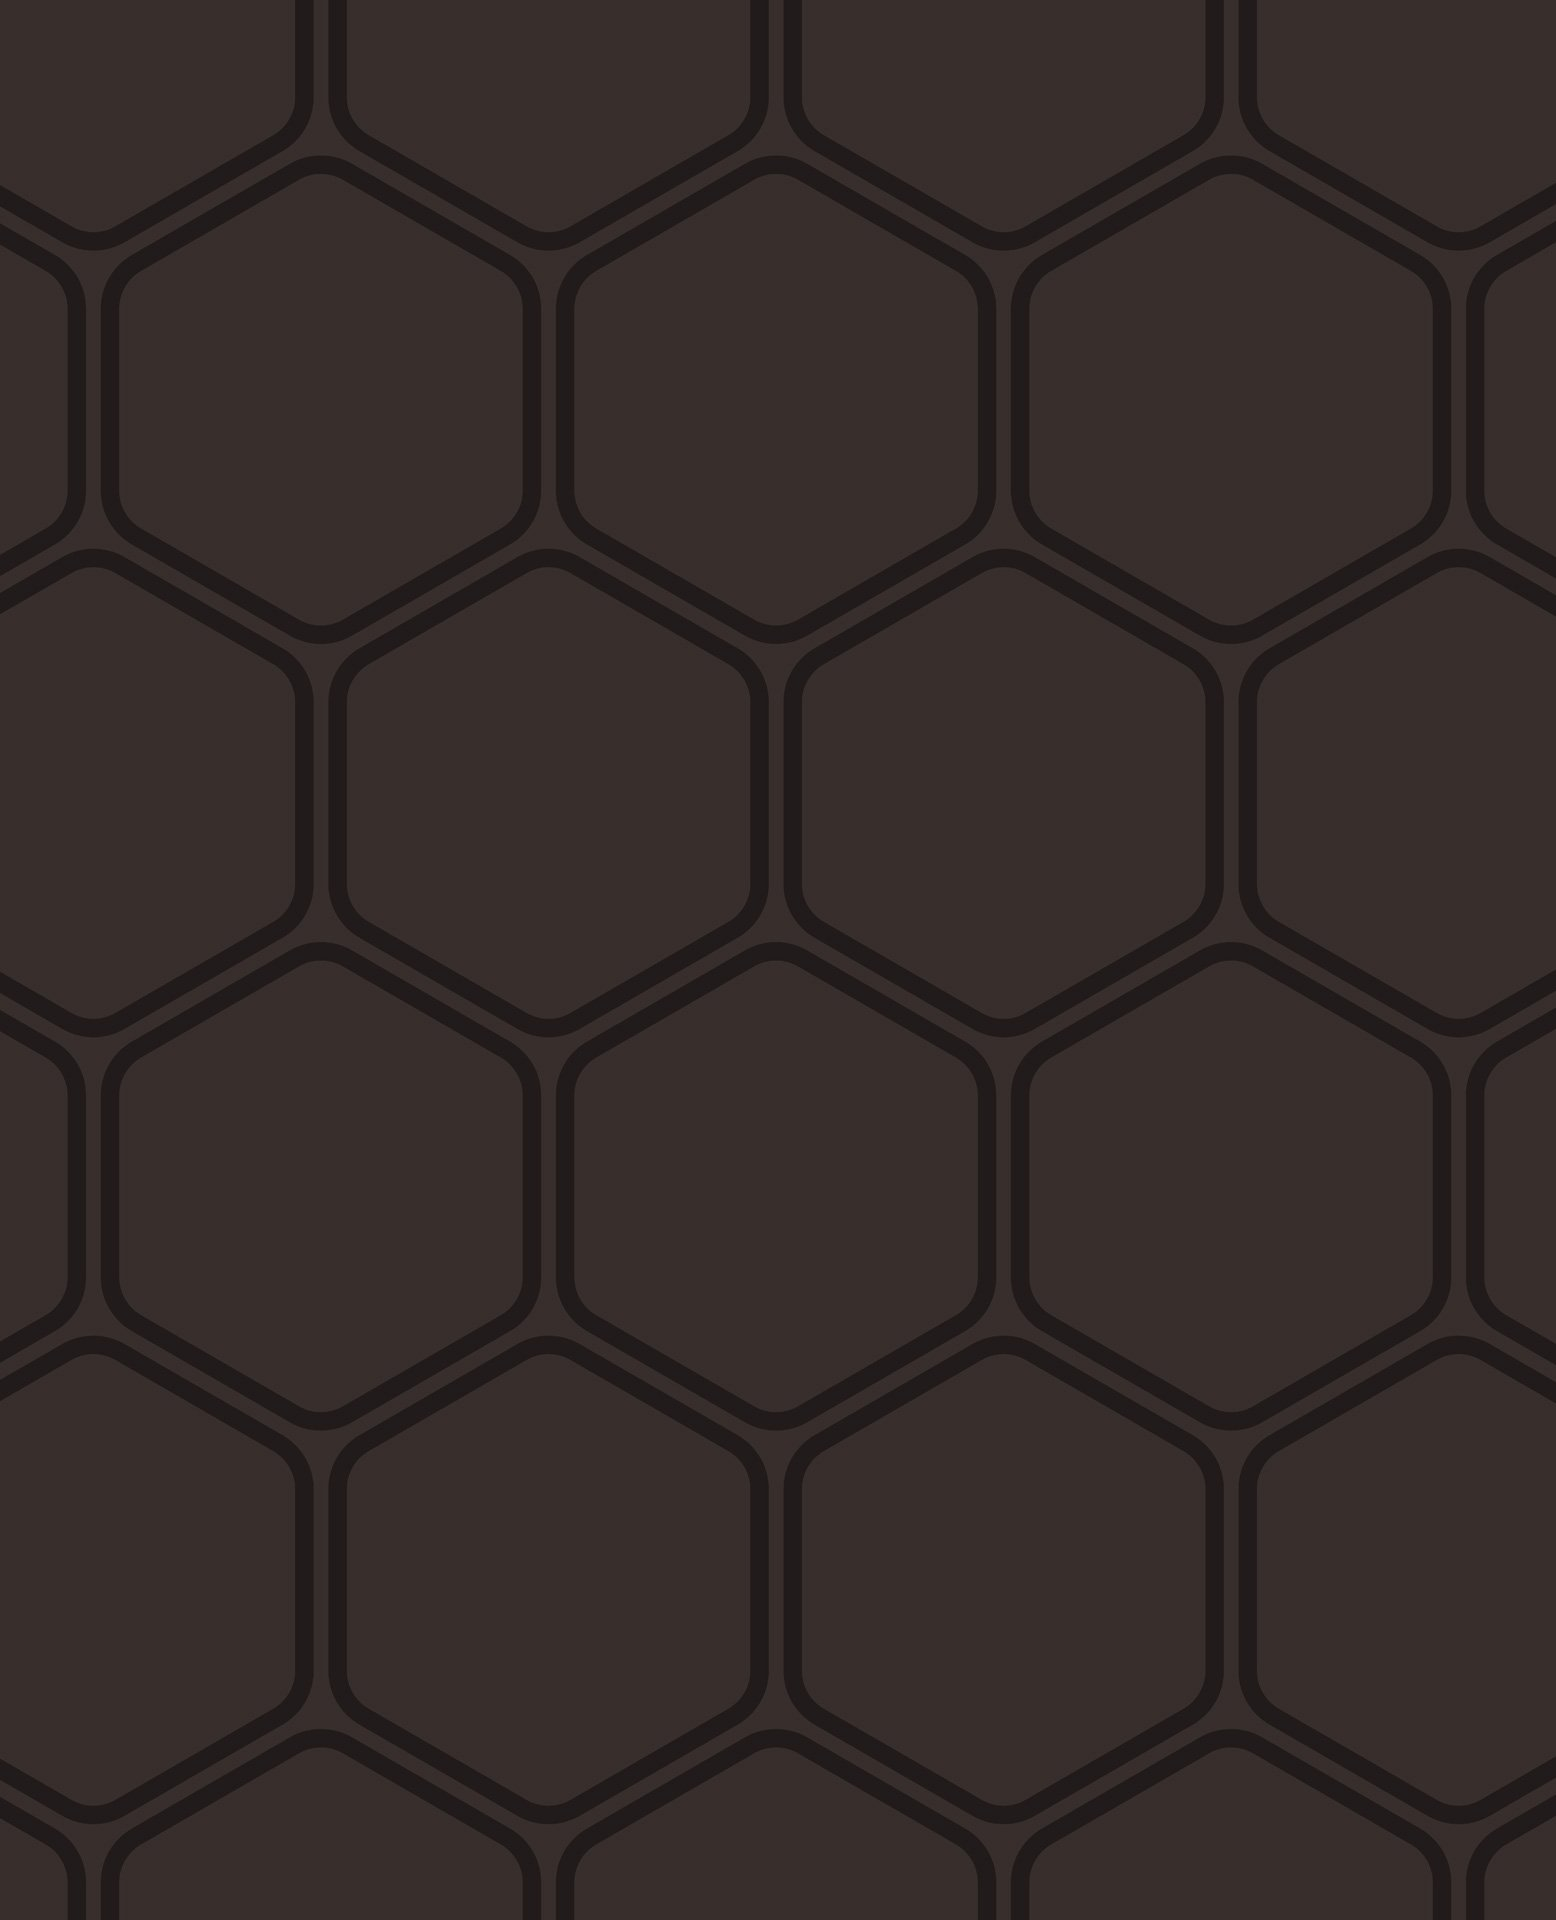 Honeycomb background for tablet